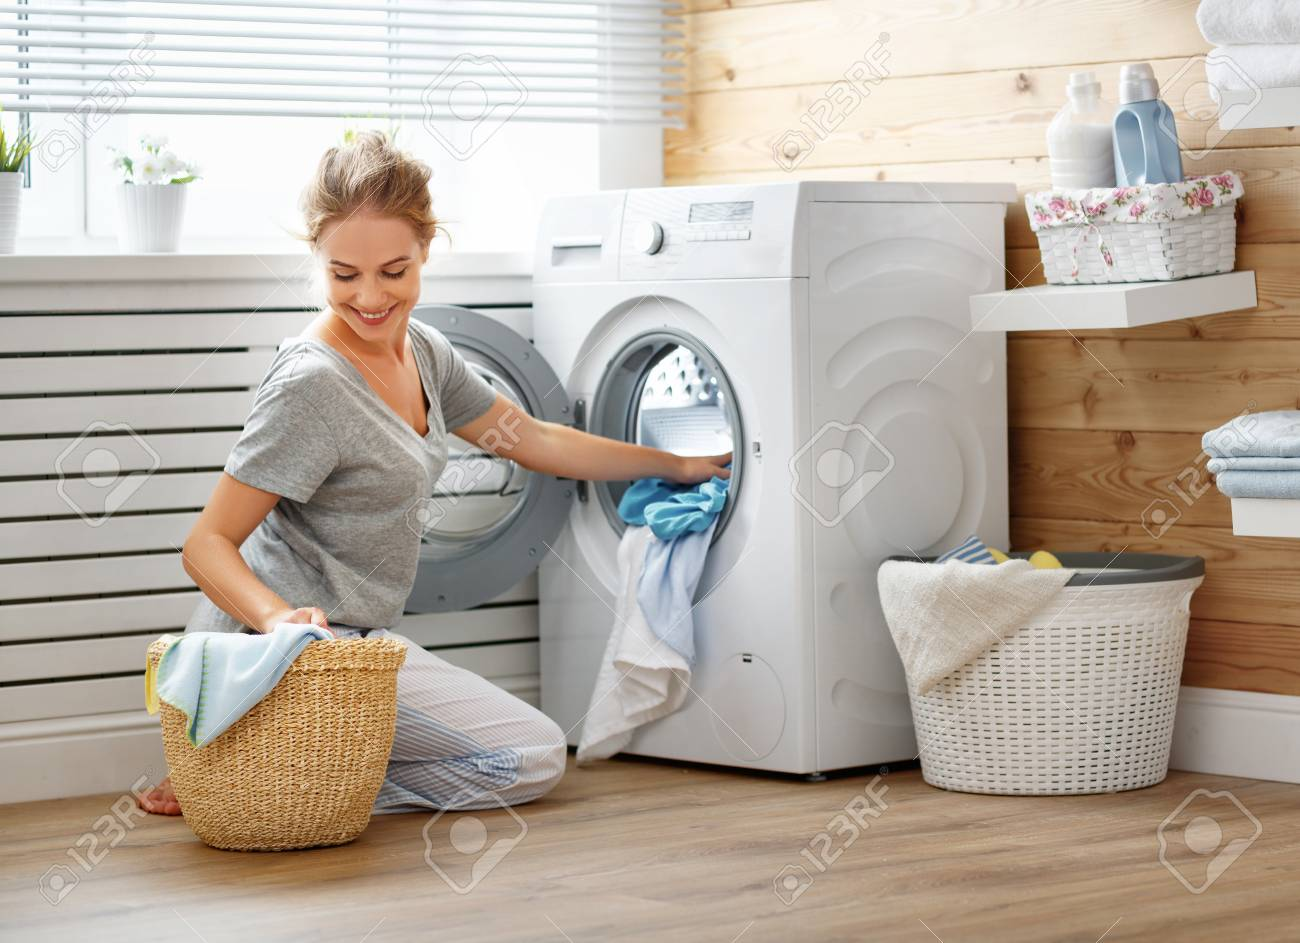 A Happy Housewife Woman In Laundry Room With Washing Machine Stock Photo,  Picture And Royalty Free Image. Image 93867833.